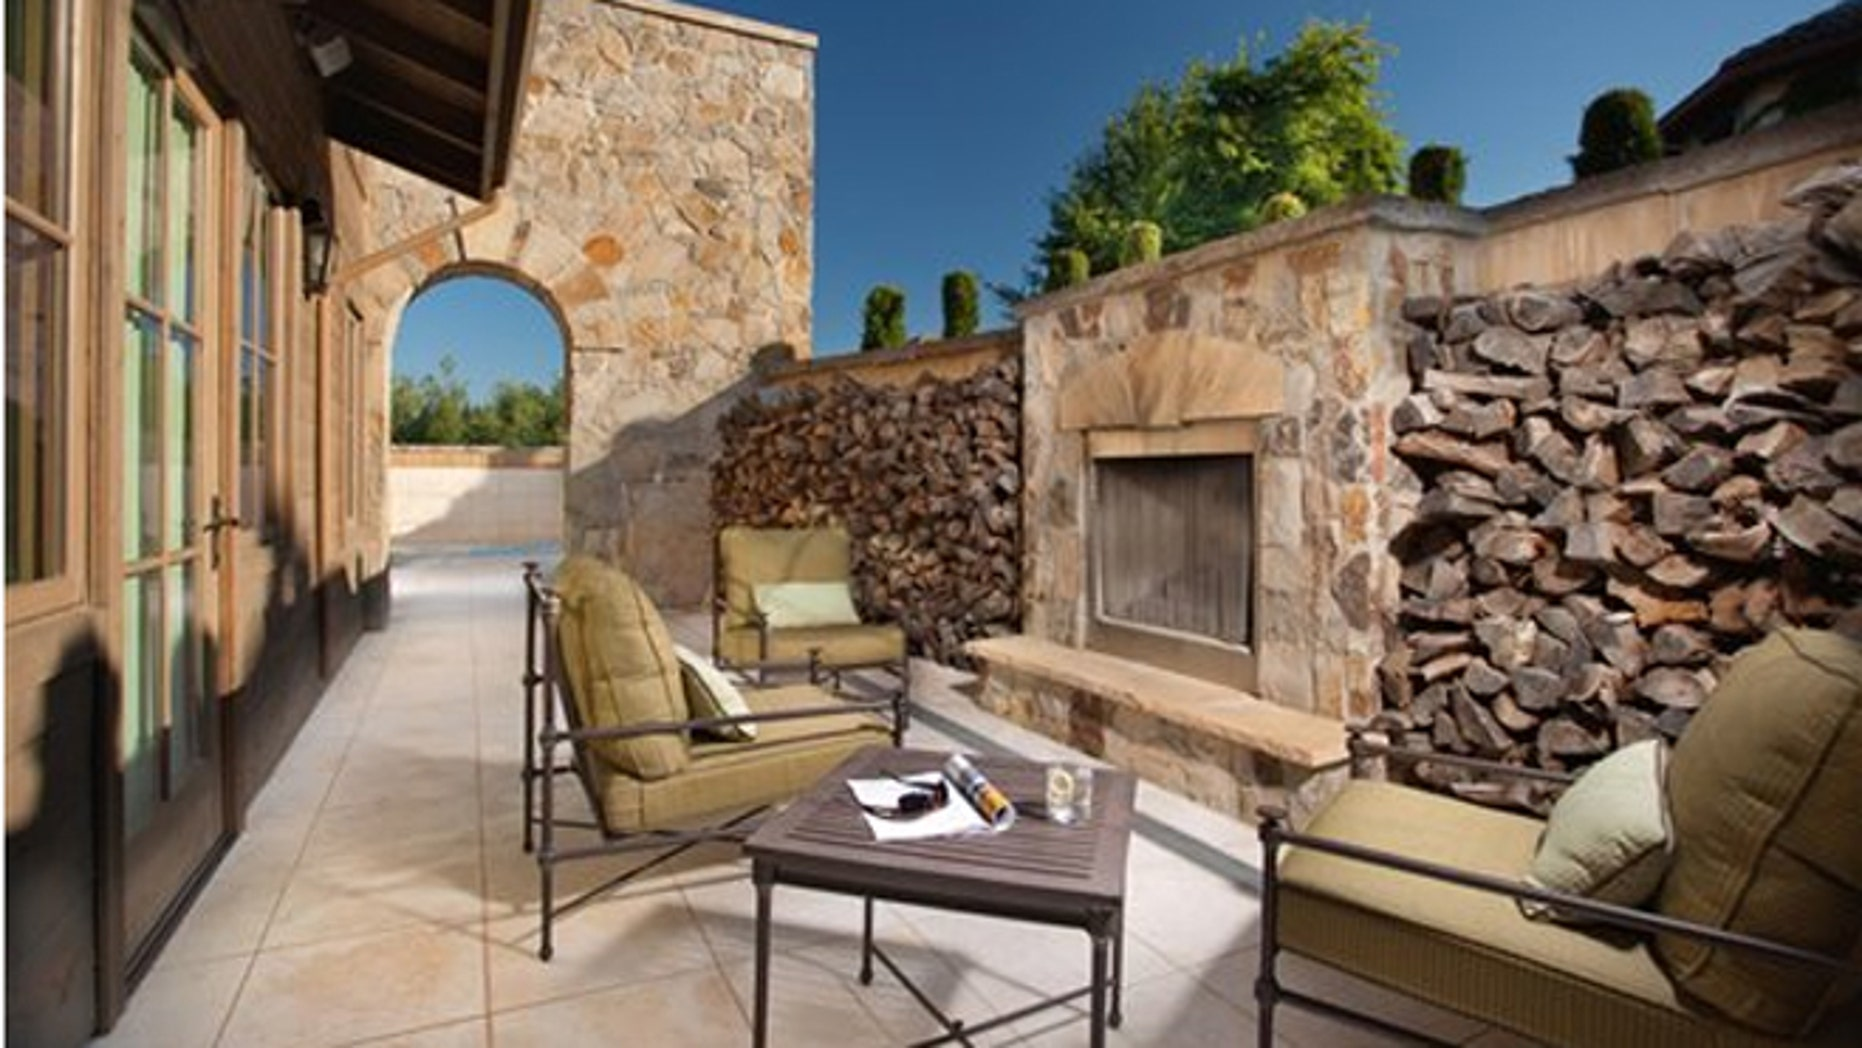 At the Vintage Estate in Napa Valley, the Men's Lounge at Spa Villagio is designed for ultimate privacy and comfort.